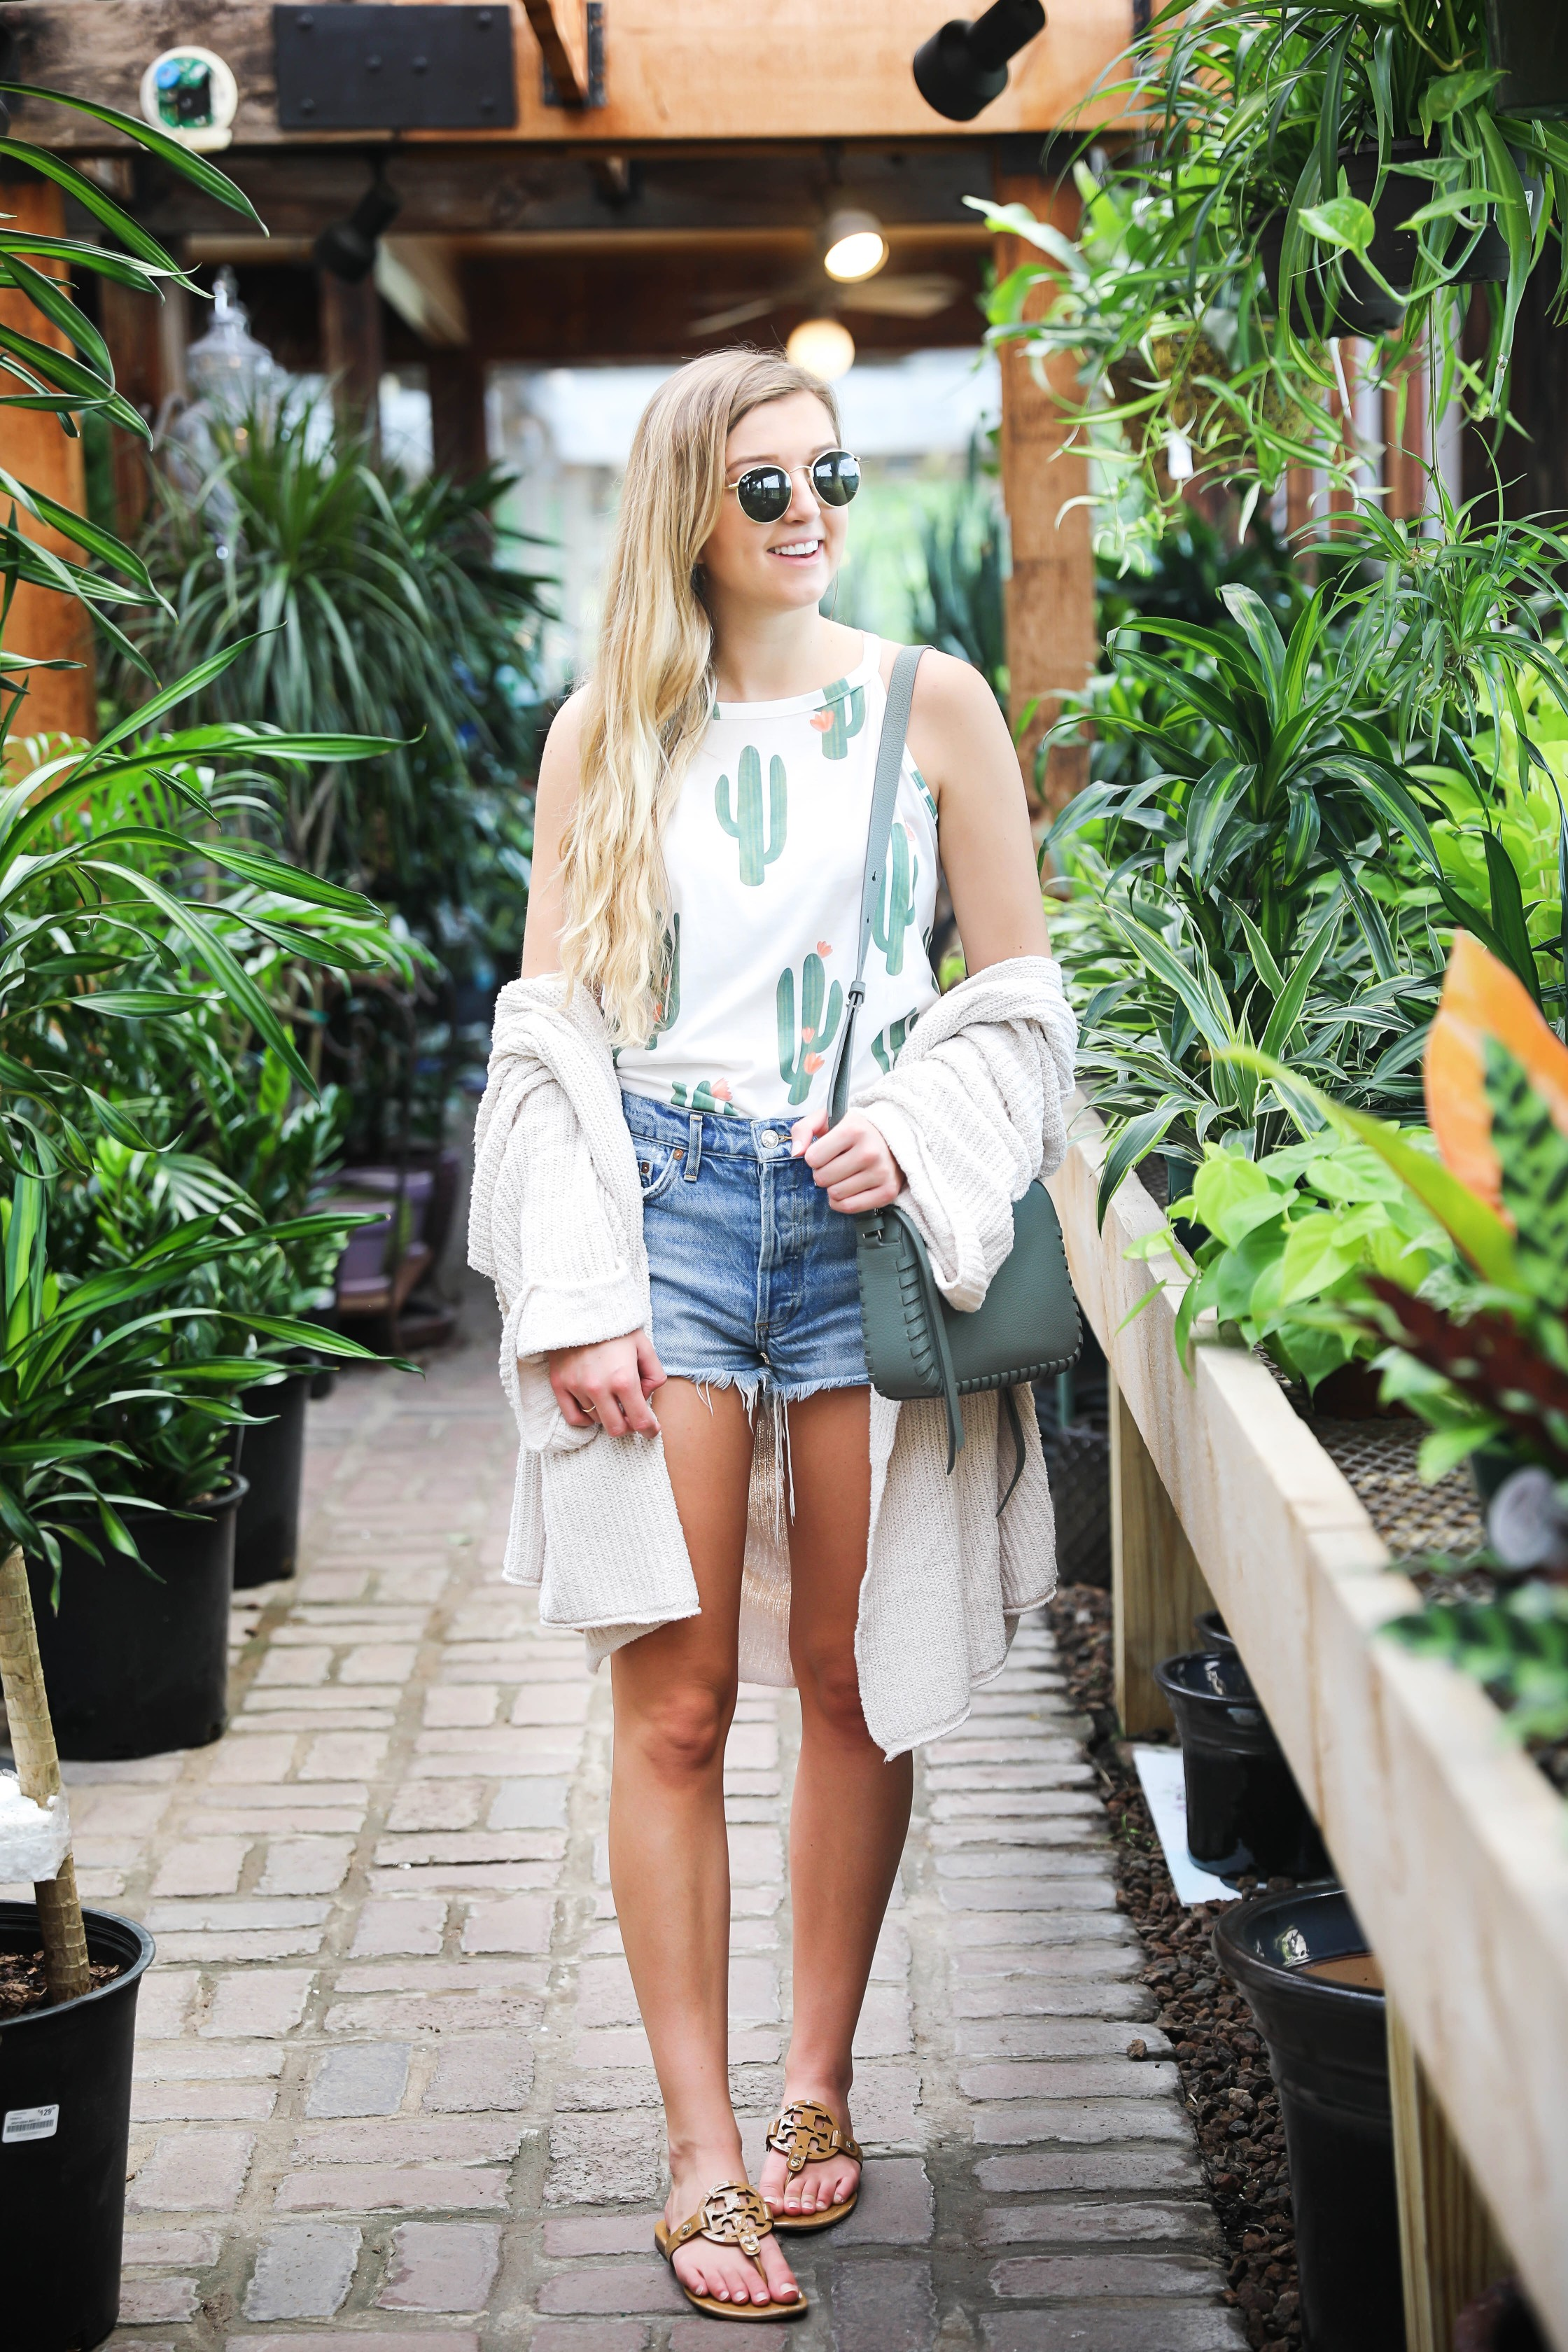 Cutest cactus top! Not only is it adorable, but it's inexpensive! I paired them with jean shorts, my favorite cream free people cardigan, my new allsaints bag, Tory Burch Millers, and Ray Ban sunglasses! The cutest summer outfit shot at a flower and plant nursery! Details on fashion blog daily dose of charm by lauren lindmark